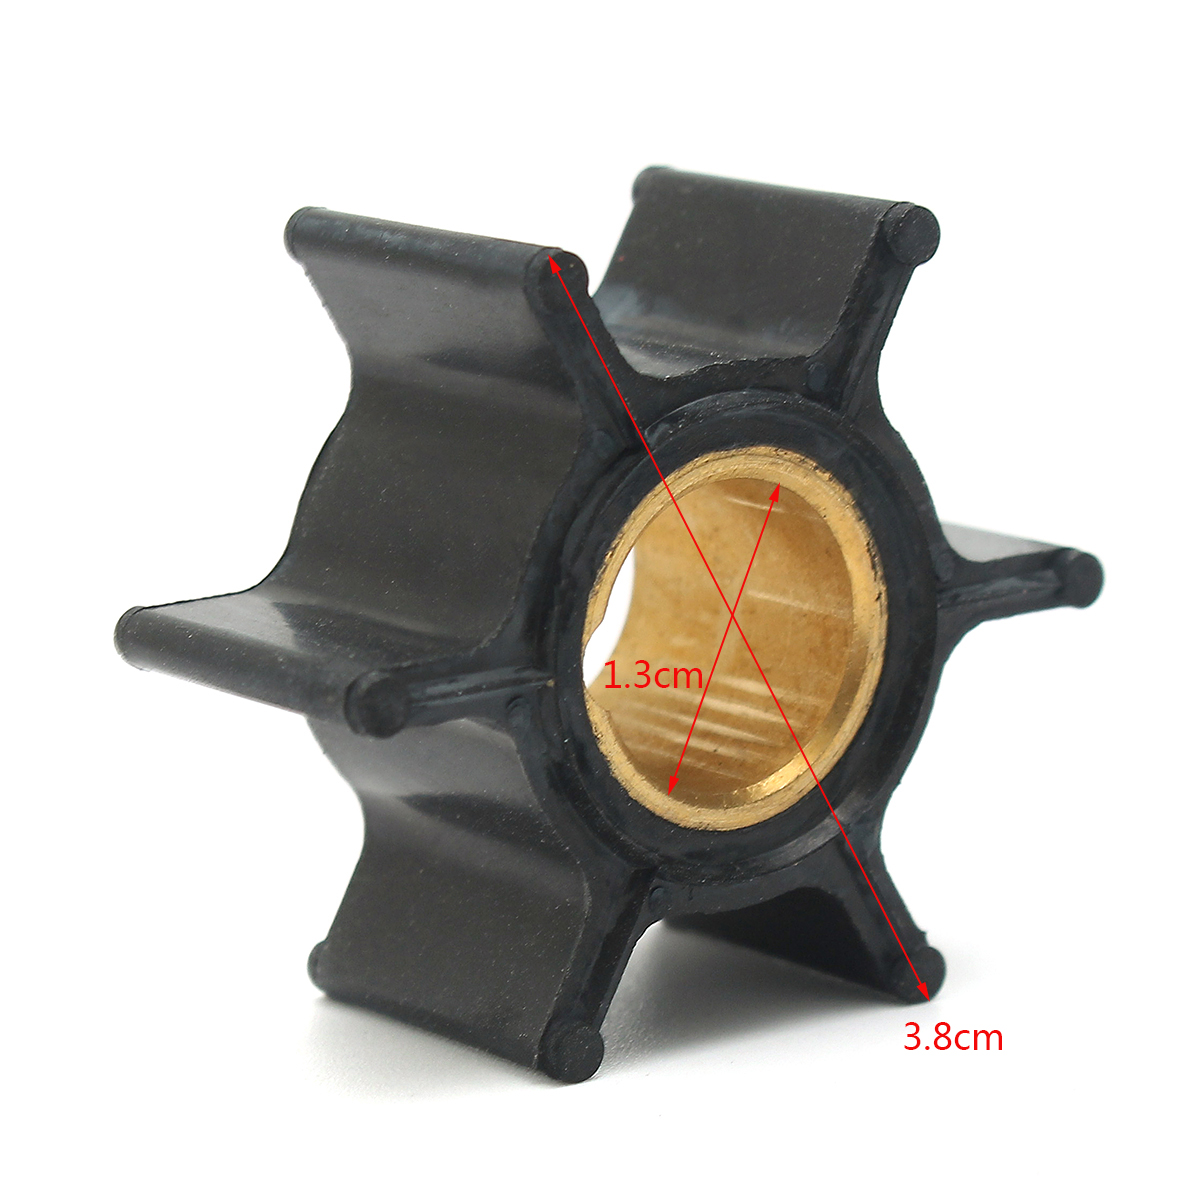 Water Pump Impeller For Johnson Evinrude 9.9/15HP Outboard 386084 18-3050 500355